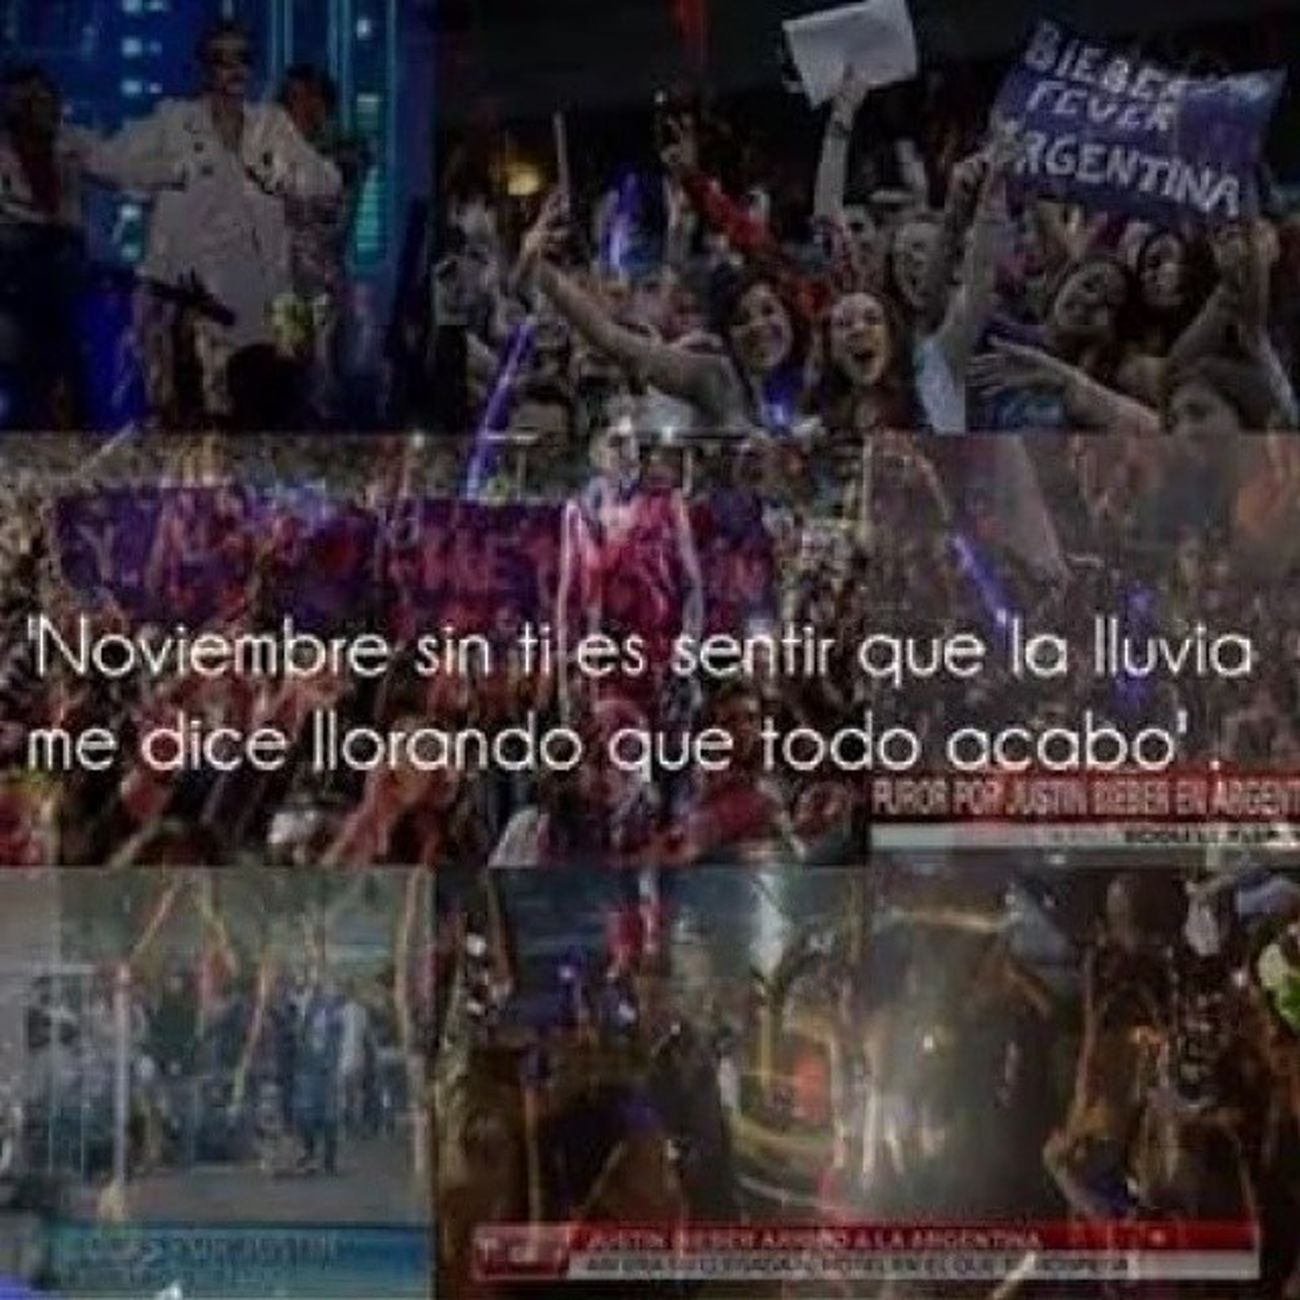 "Ninemonths NueveDeNoviembre ICantBelieveIt 9/11/13 ""it was the best day of my life"" ? ? BELIEVEtour"